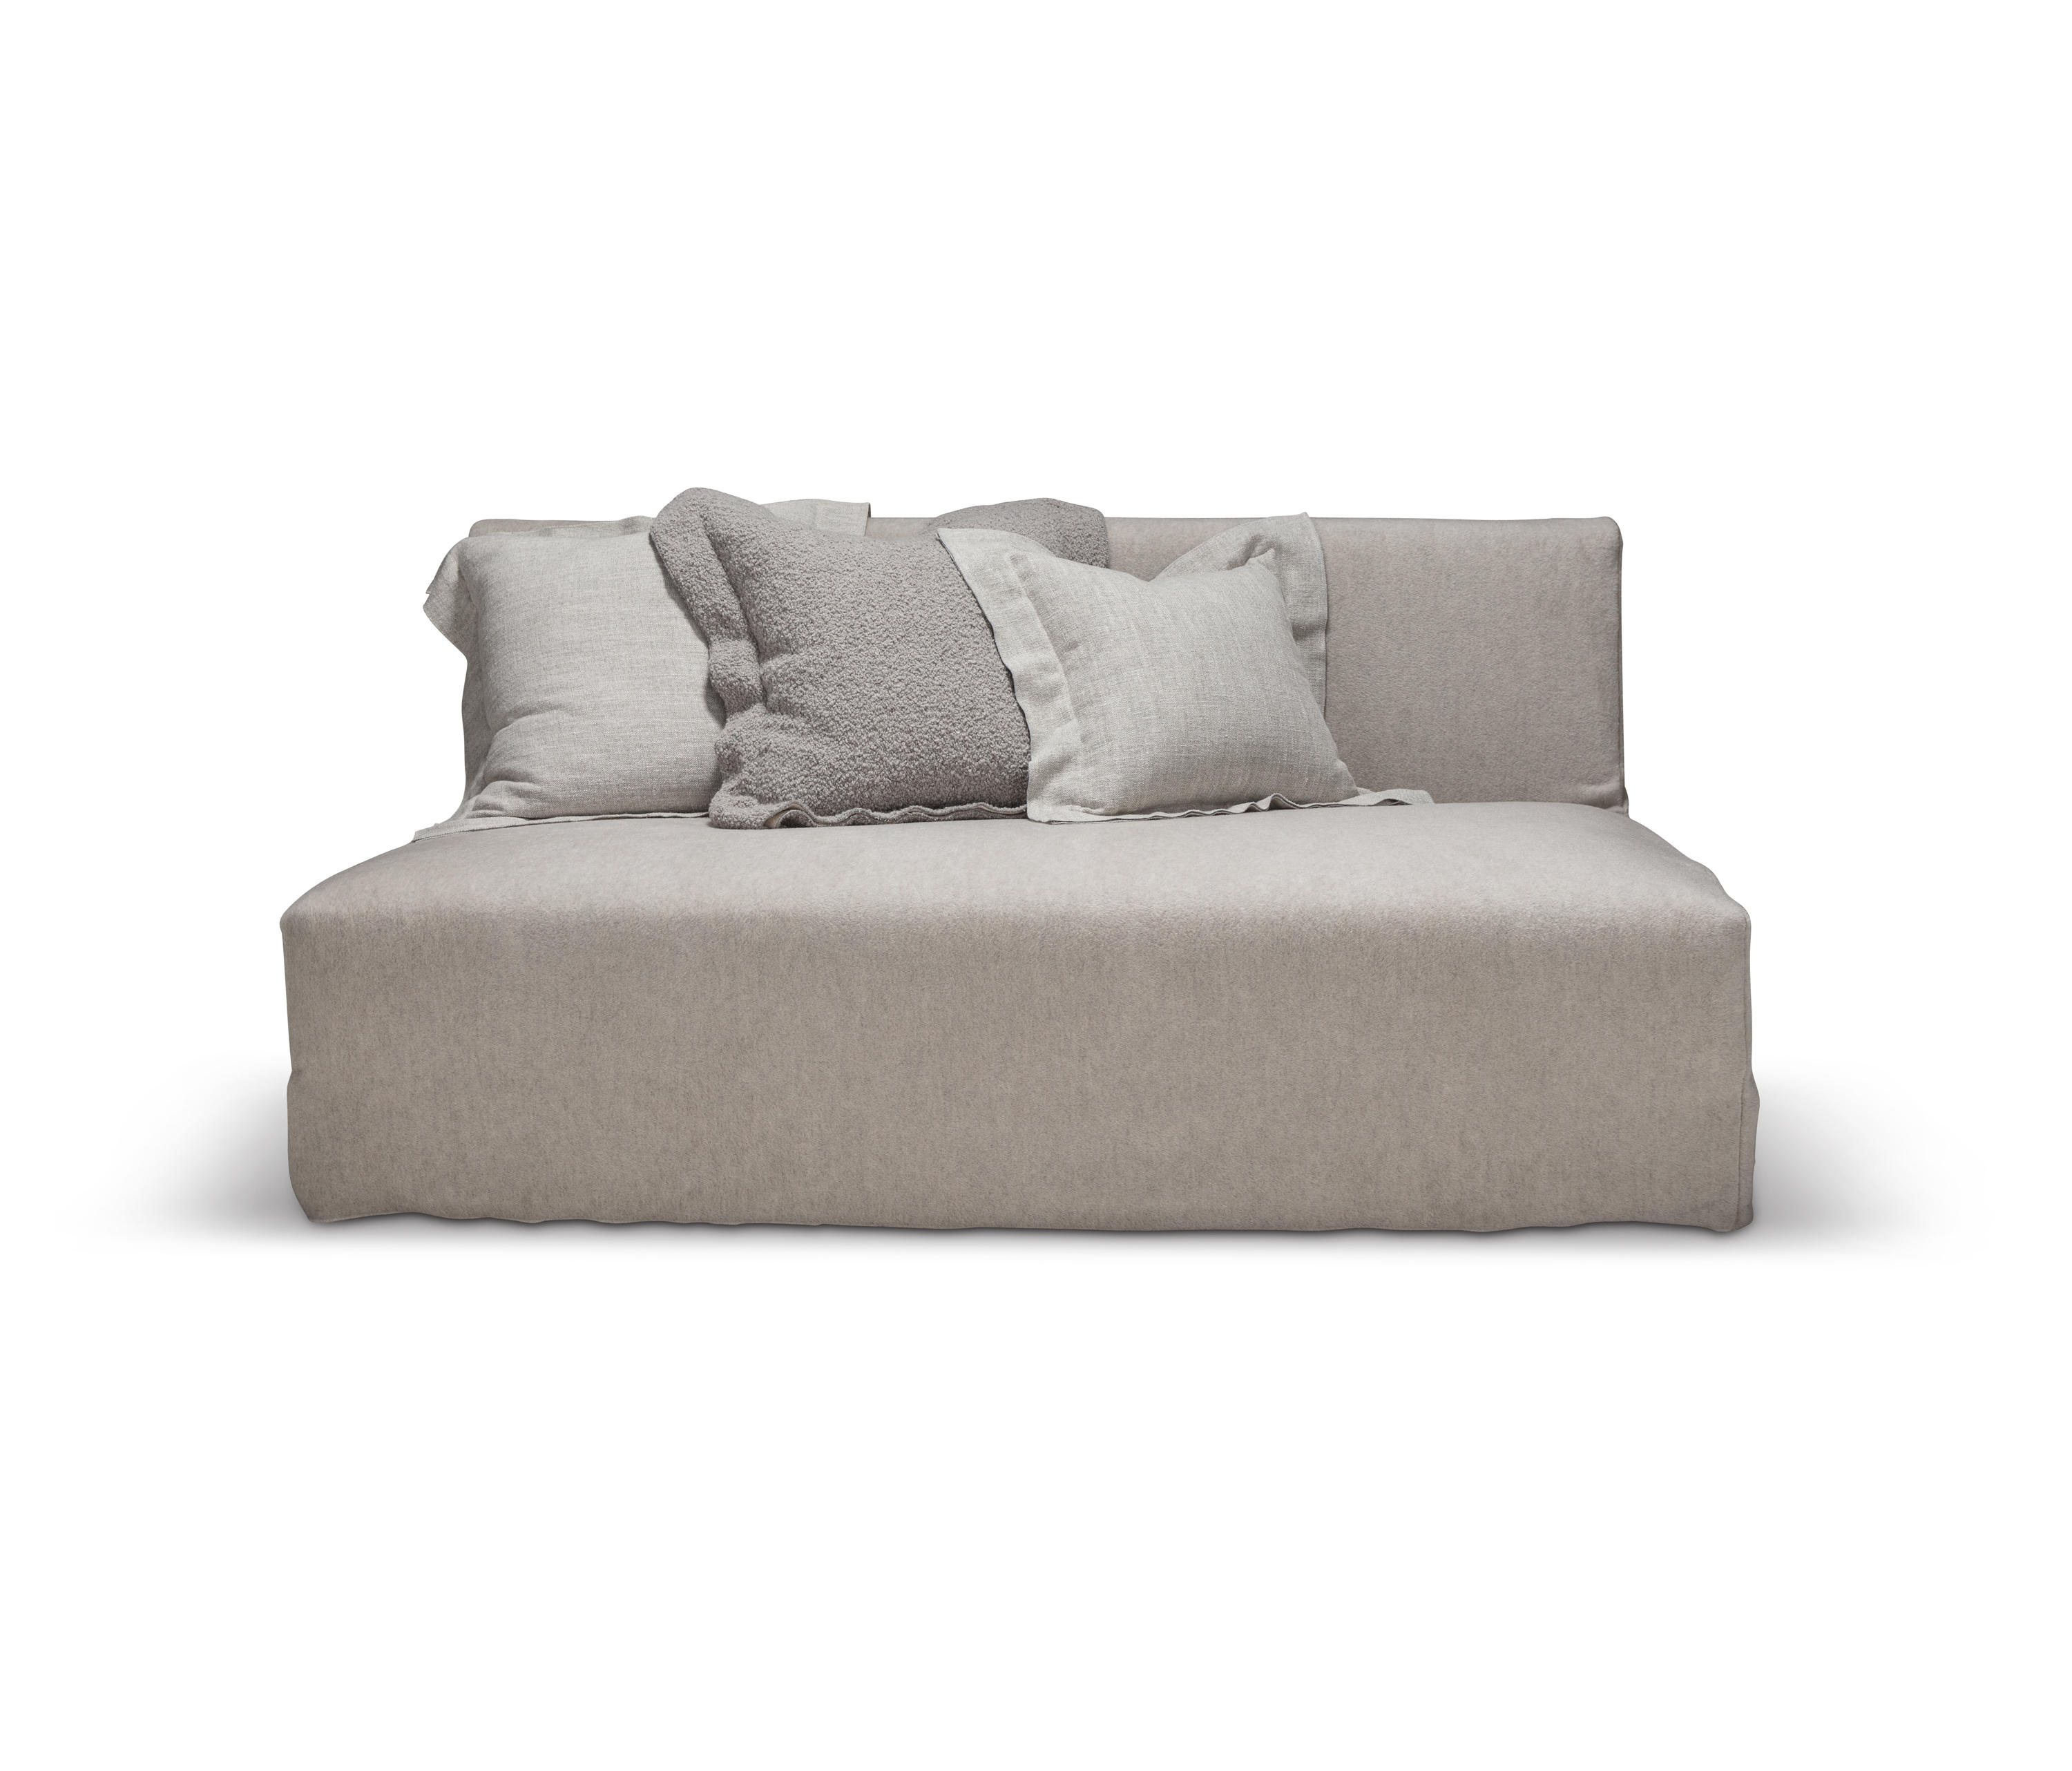 CROSBY | SOFA - Sofas from Verellen | Architonic